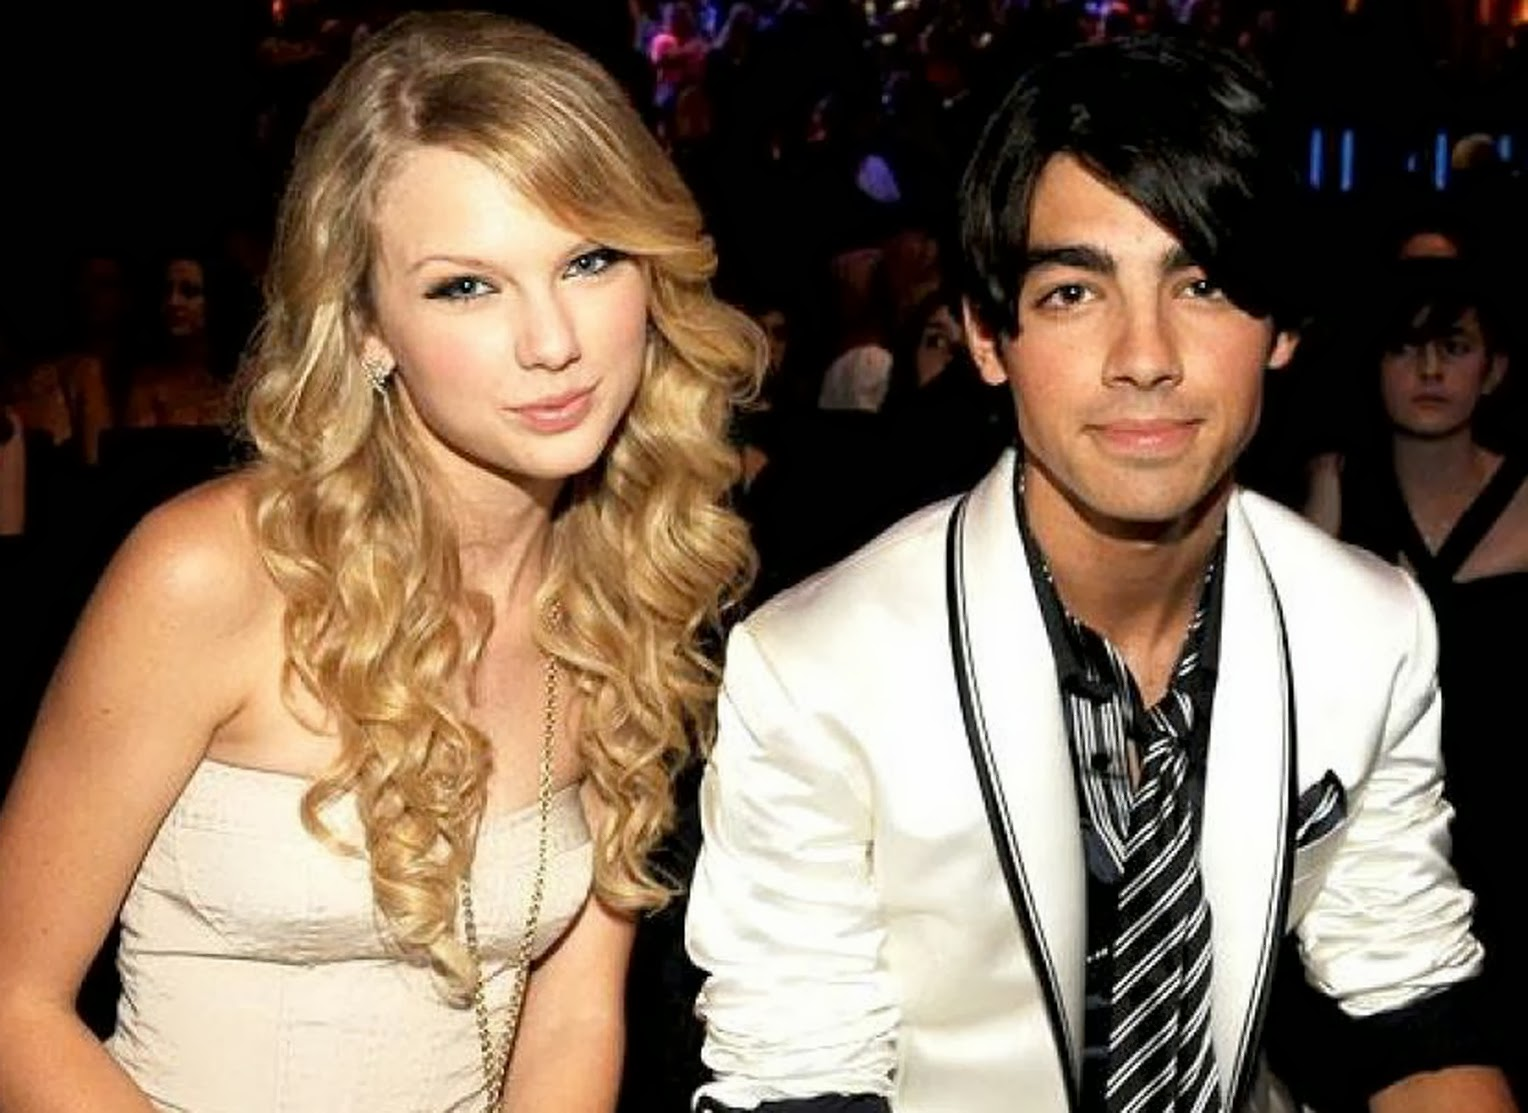 Taylor Swift dan Joe Jonas Brothers: Our heroes forever